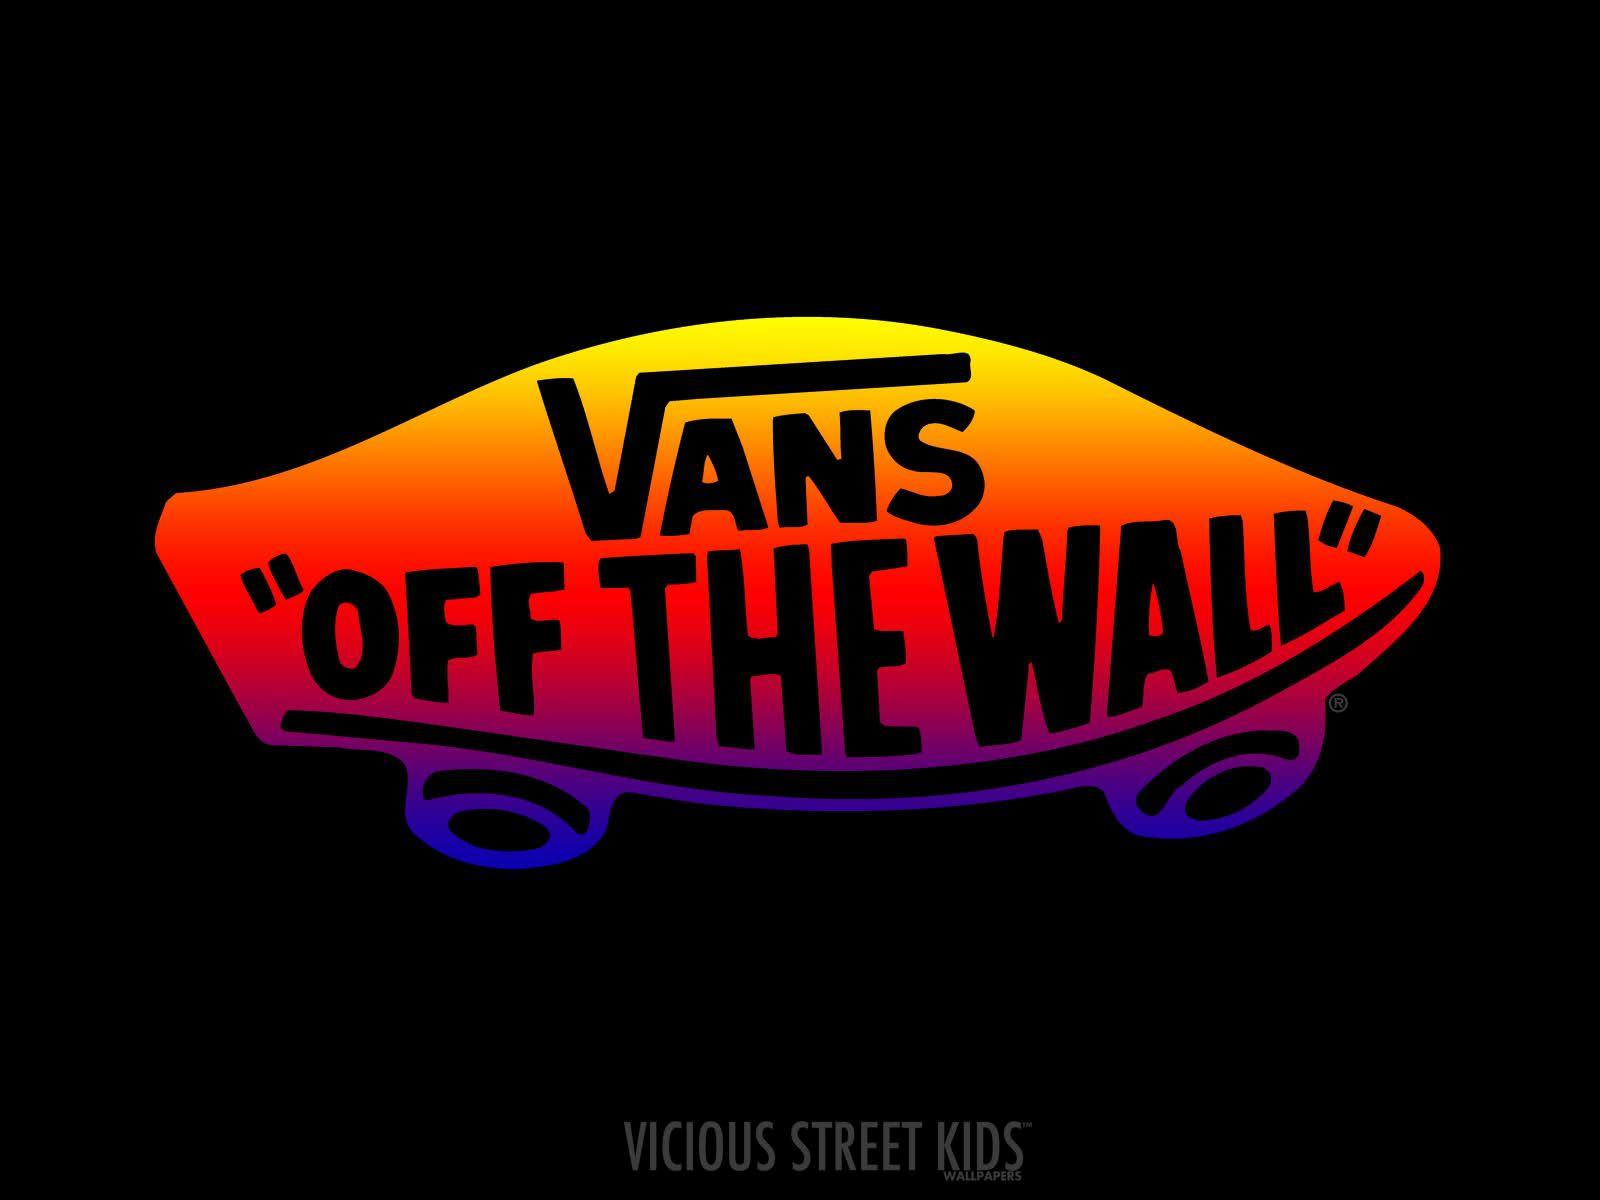 vans off the wall wallpapers wallpaper cave. Black Bedroom Furniture Sets. Home Design Ideas